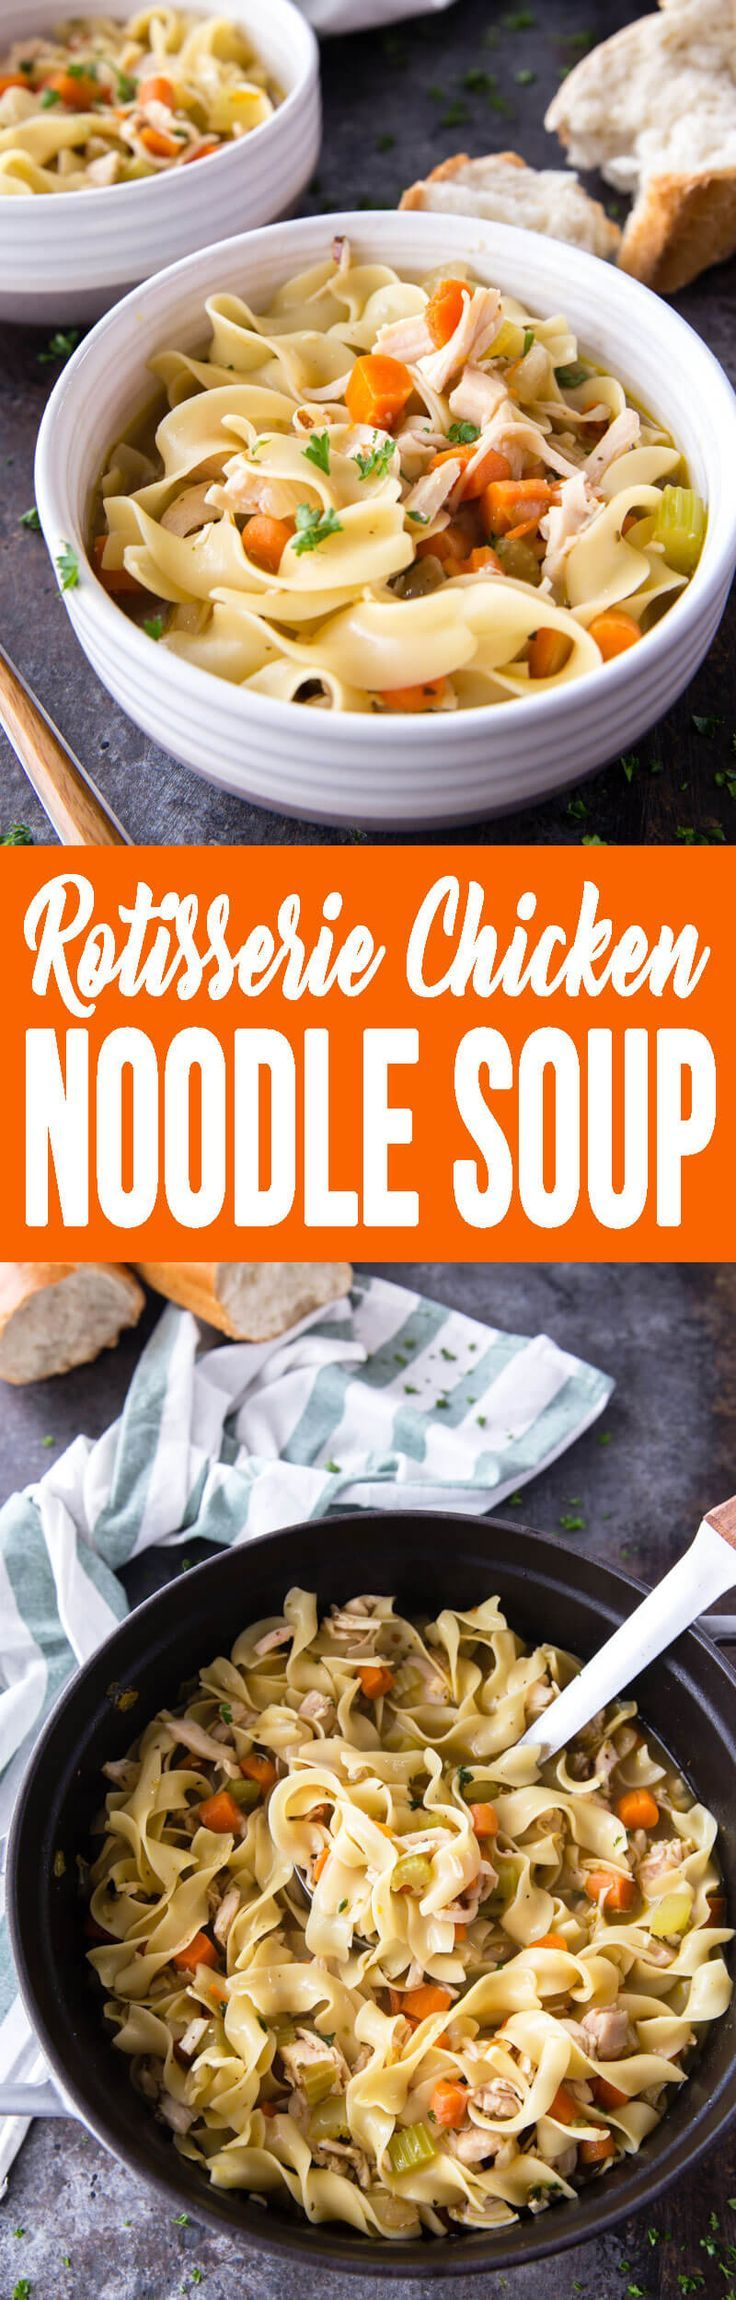 Rotisserie Chicken Noodle Soup is the best dinner during this time of year! Flu and cold season gets kicked in the butt with this for dinner!